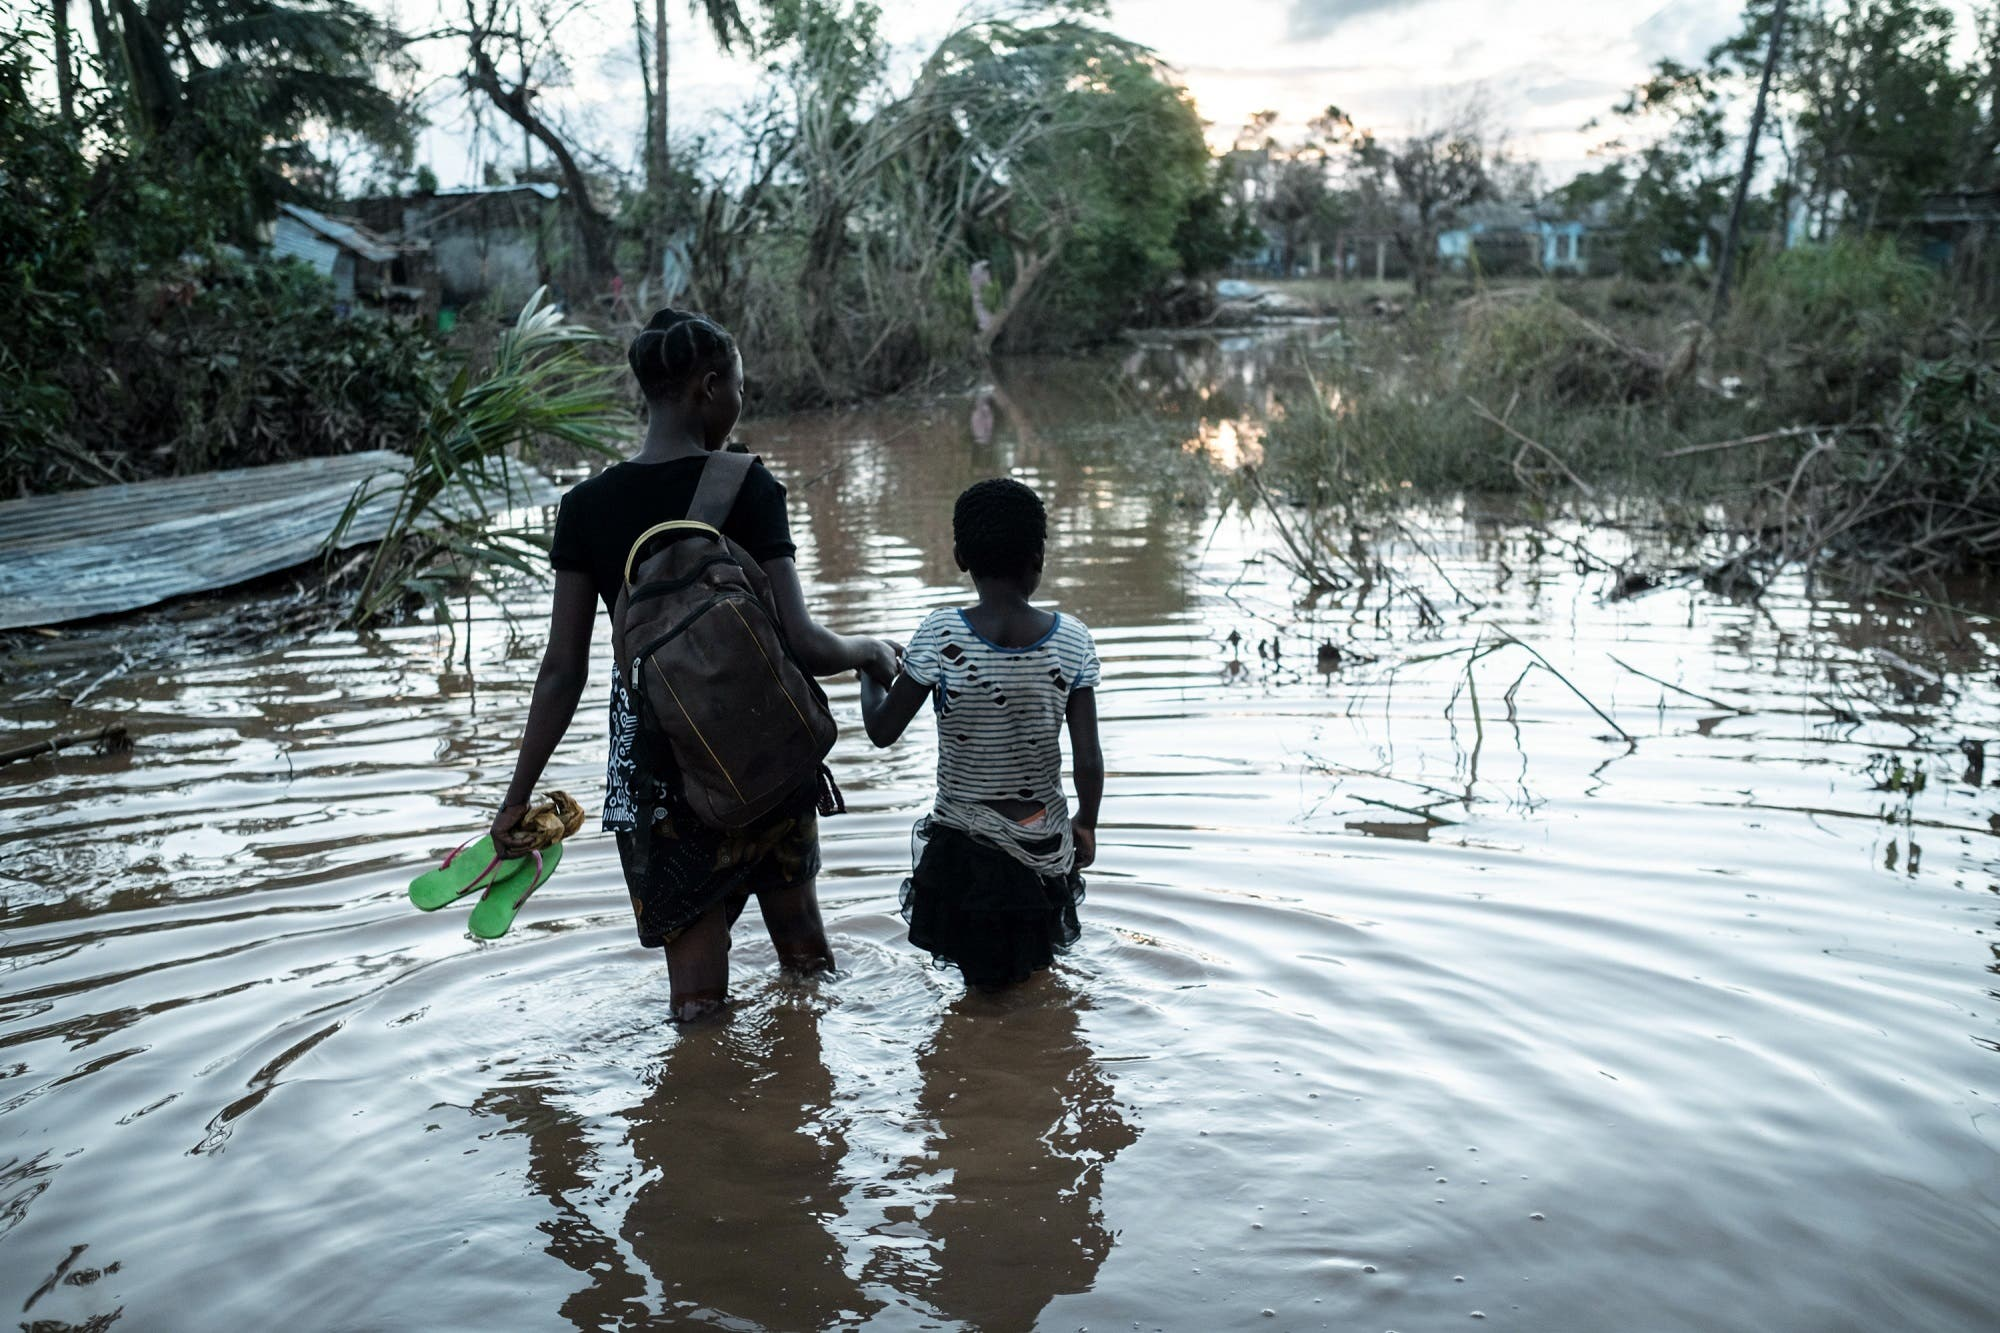 Rosita Moises Zacarias and her sister Joaninha Manuel walk in flooded waters from their house destroyed by the cyclone Idai, on March 22, 2019. (AFP)